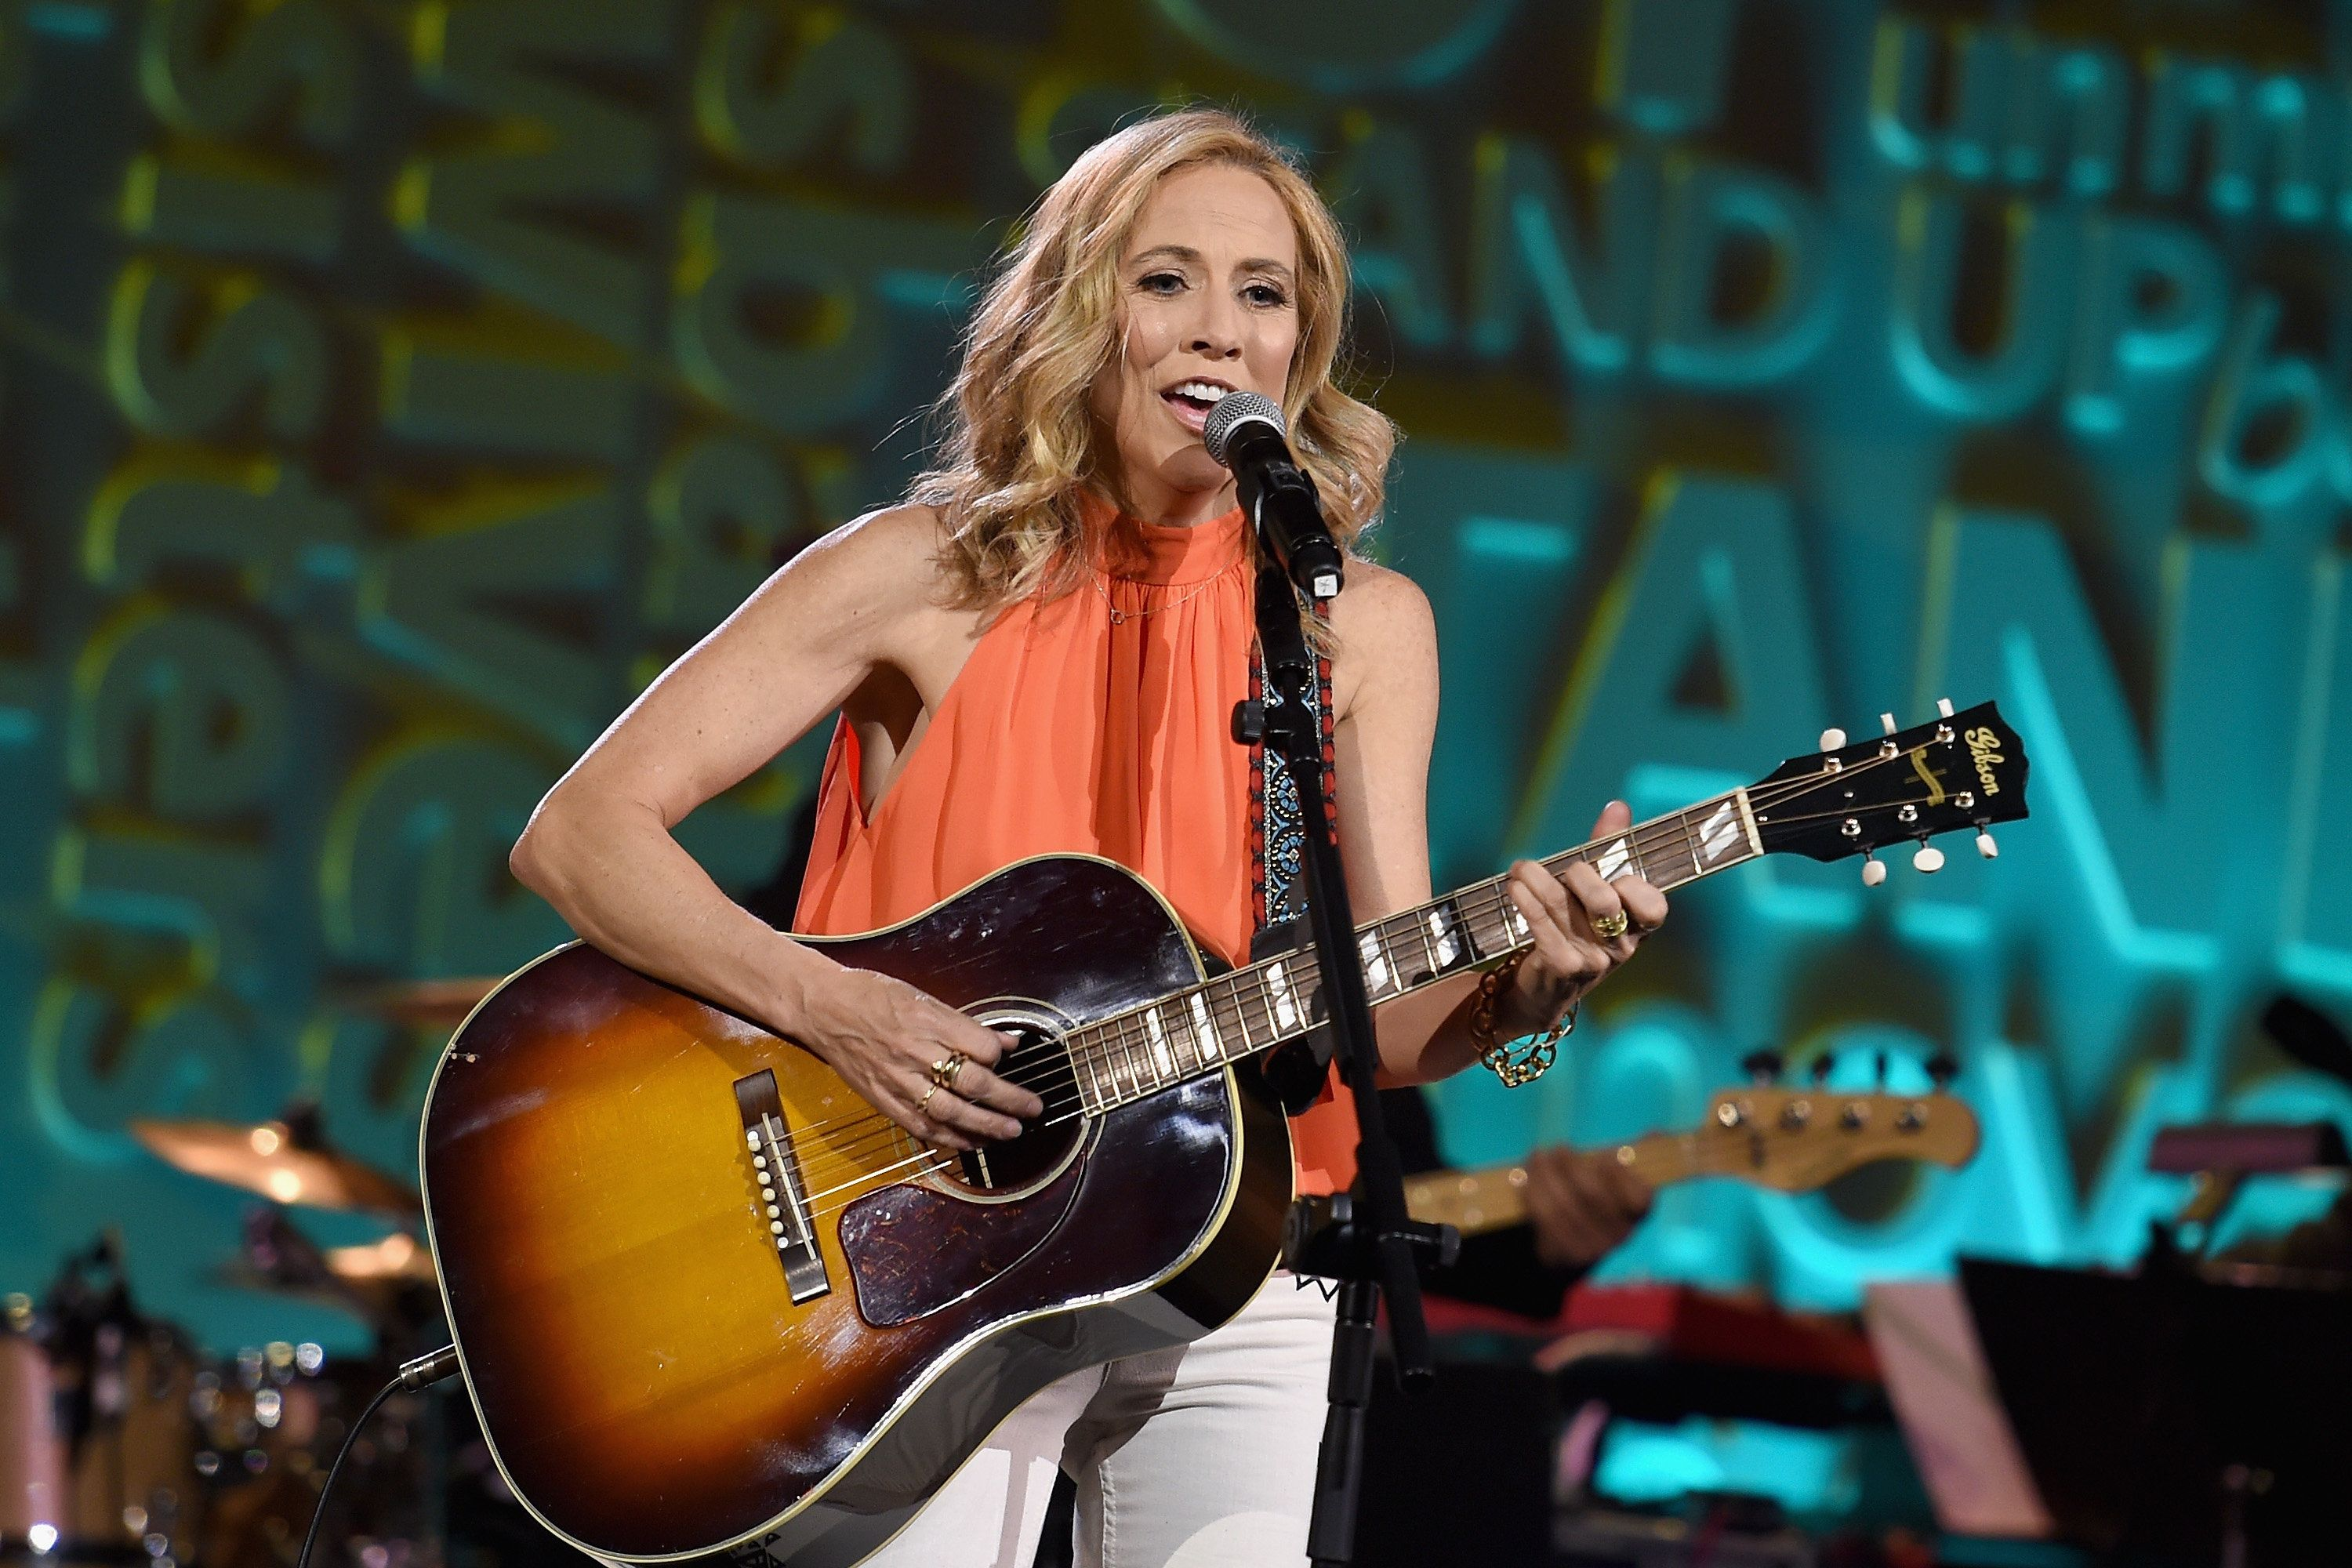 NEW YORK - APRIL 09:  (EXCLUSIVE COVERAGE)   Recording artist Sheryl Crow performs onstage during Stand Up To Cancer's New York Standing Room Only, presented by Entertainment Industry Foundation, with donors American Airlines and Merck, chaired by Jim Toth, Reese Witherspoon & MasterCard President/CEO Ajay Banga and his wife Ritu, honoring Katie Couric at Cipriani Wall Street on April 9, 2016 in New York City.  (Photo by Jamie McCarthy/Getty Images for EIF)